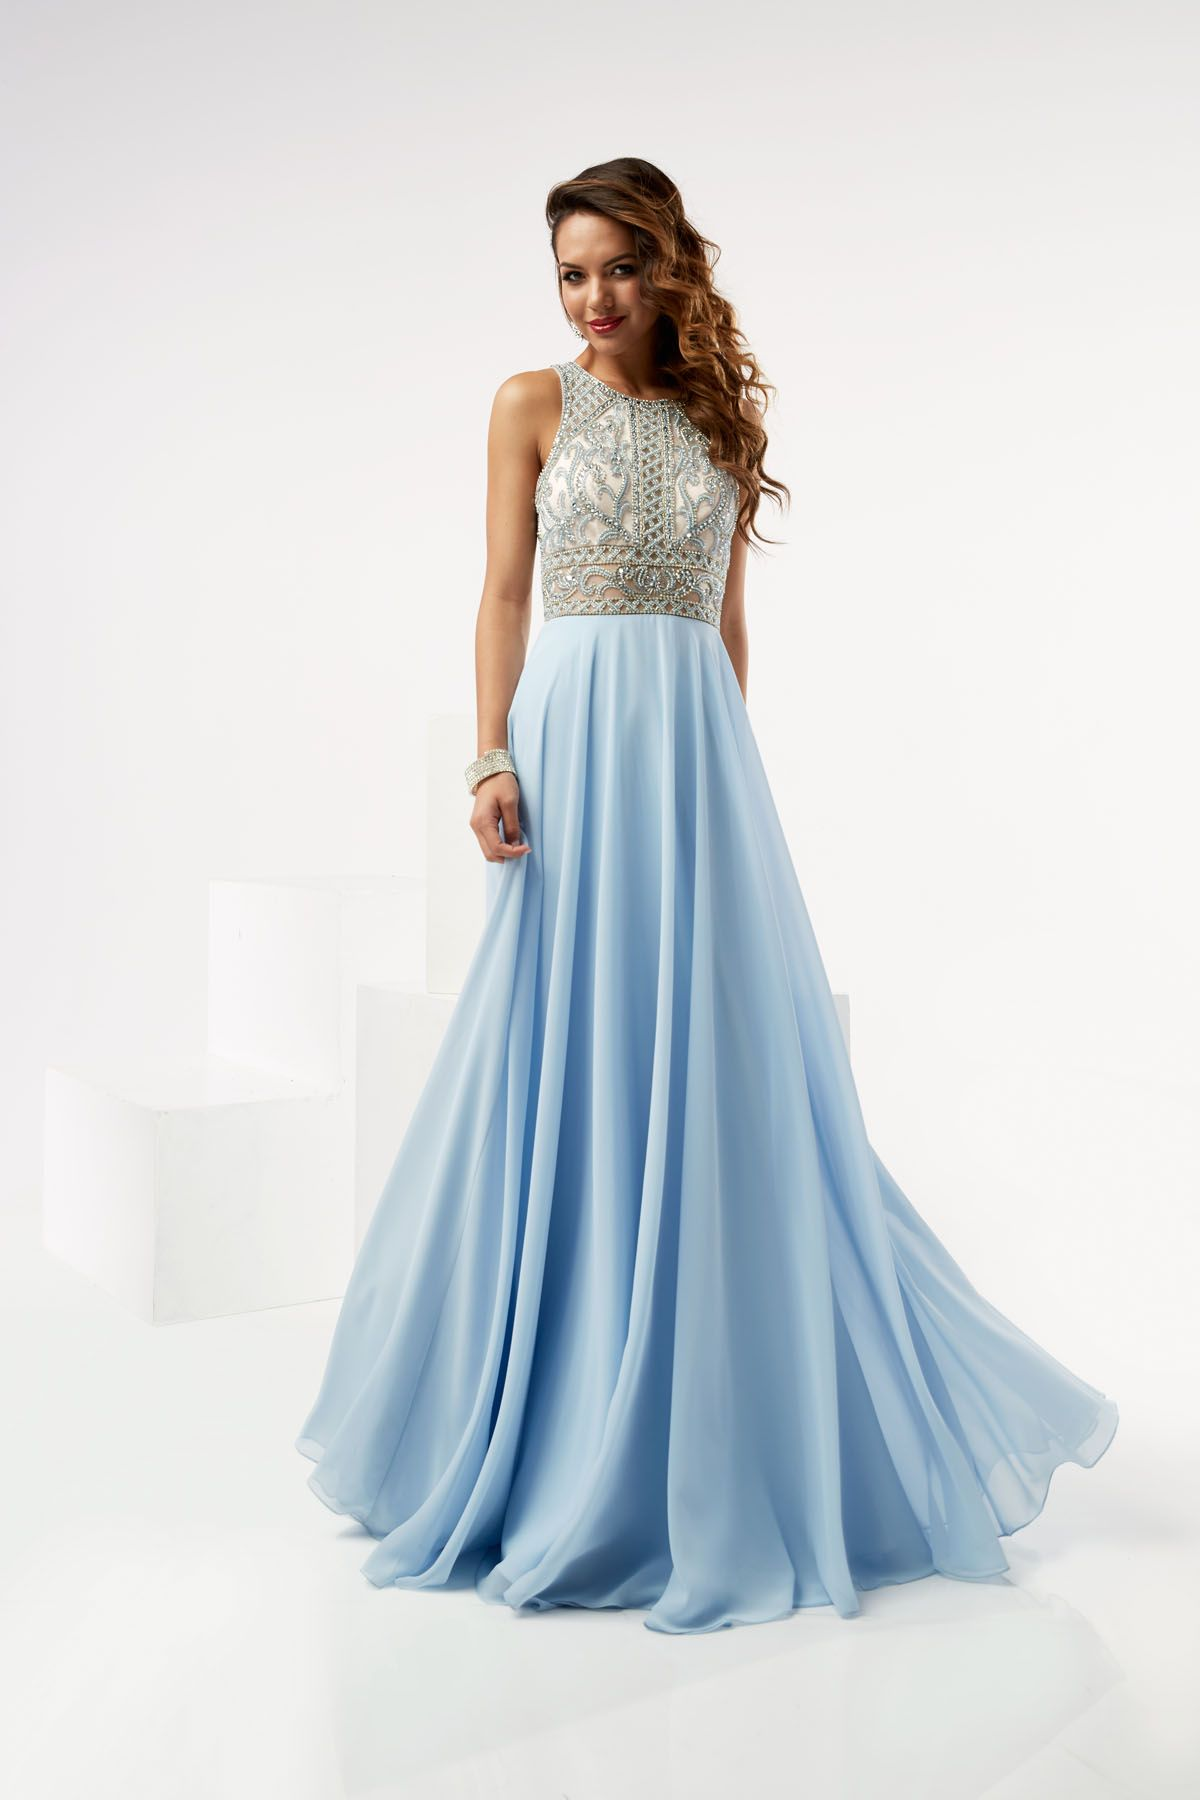 Outstanding Prom Dresses In Rochester Mn Vignette - Colorful Wedding ...